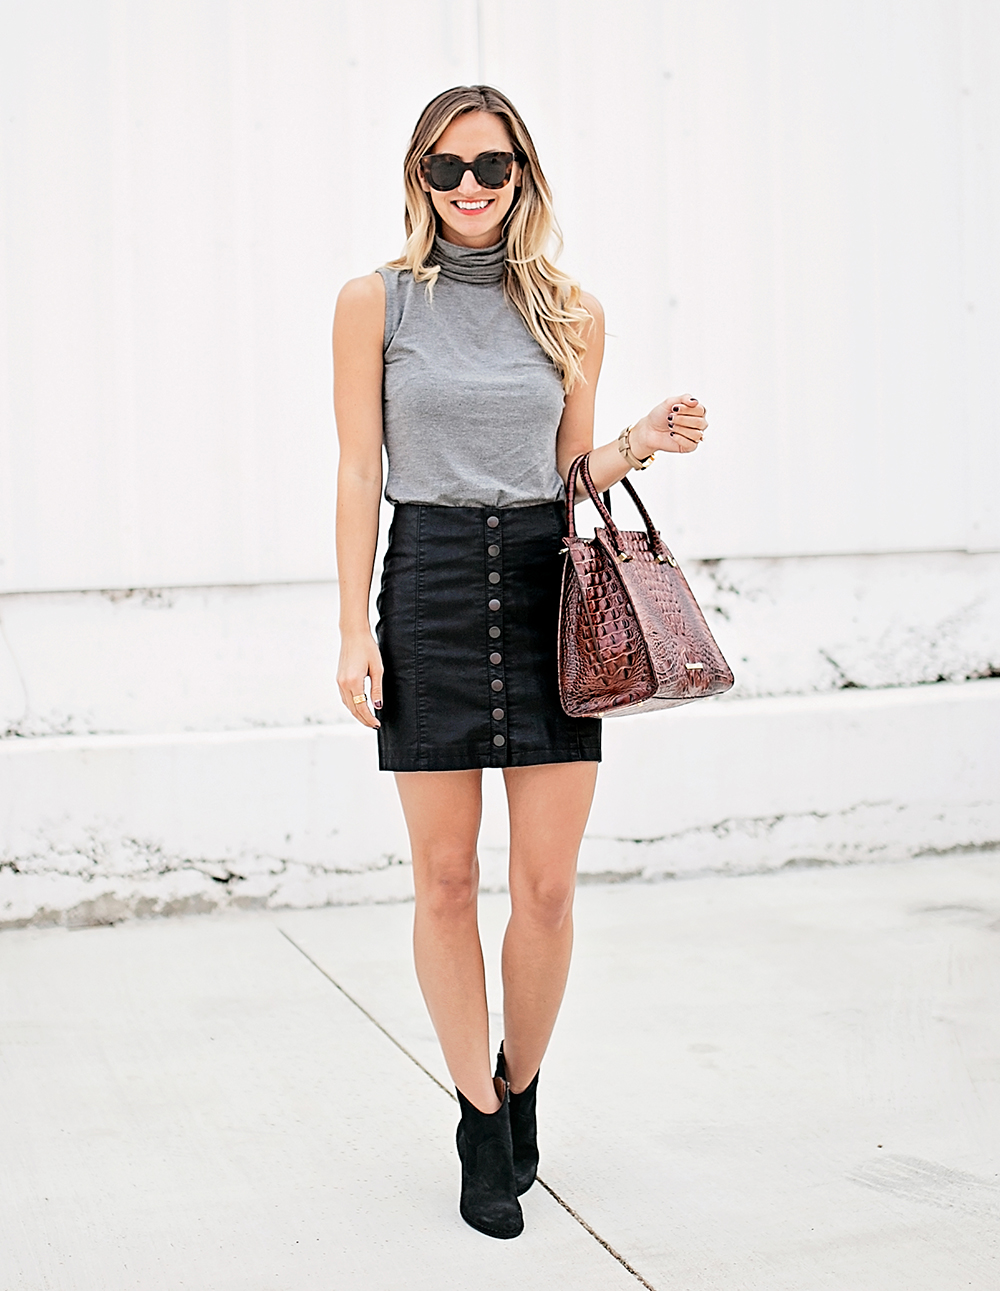 livvyland-blog-olivia-watson-bailey-44-grey-turtleneck-tank-top-free-people-leather-button-up-a-line-mini-skirt-celine-marta-sunglasses-8